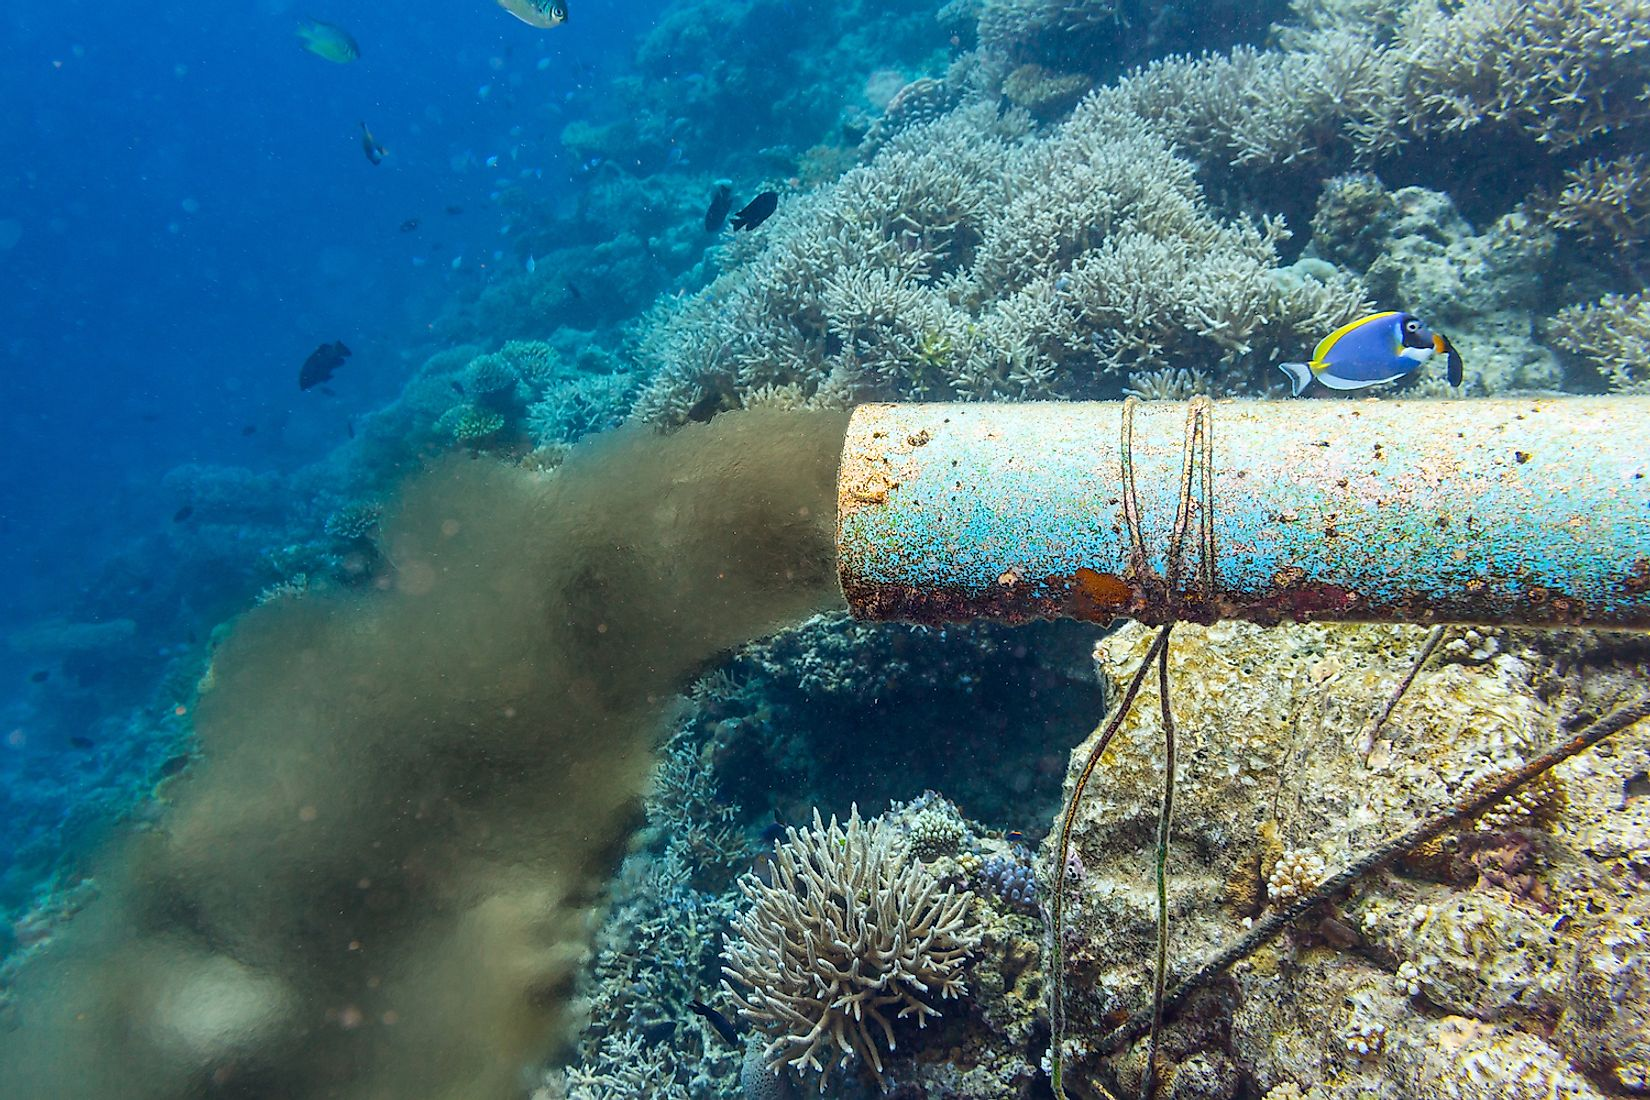 An underwater sewer pipe dumping waste into the ocean. Image credit: stockphoto-graf/Shutterstock.com